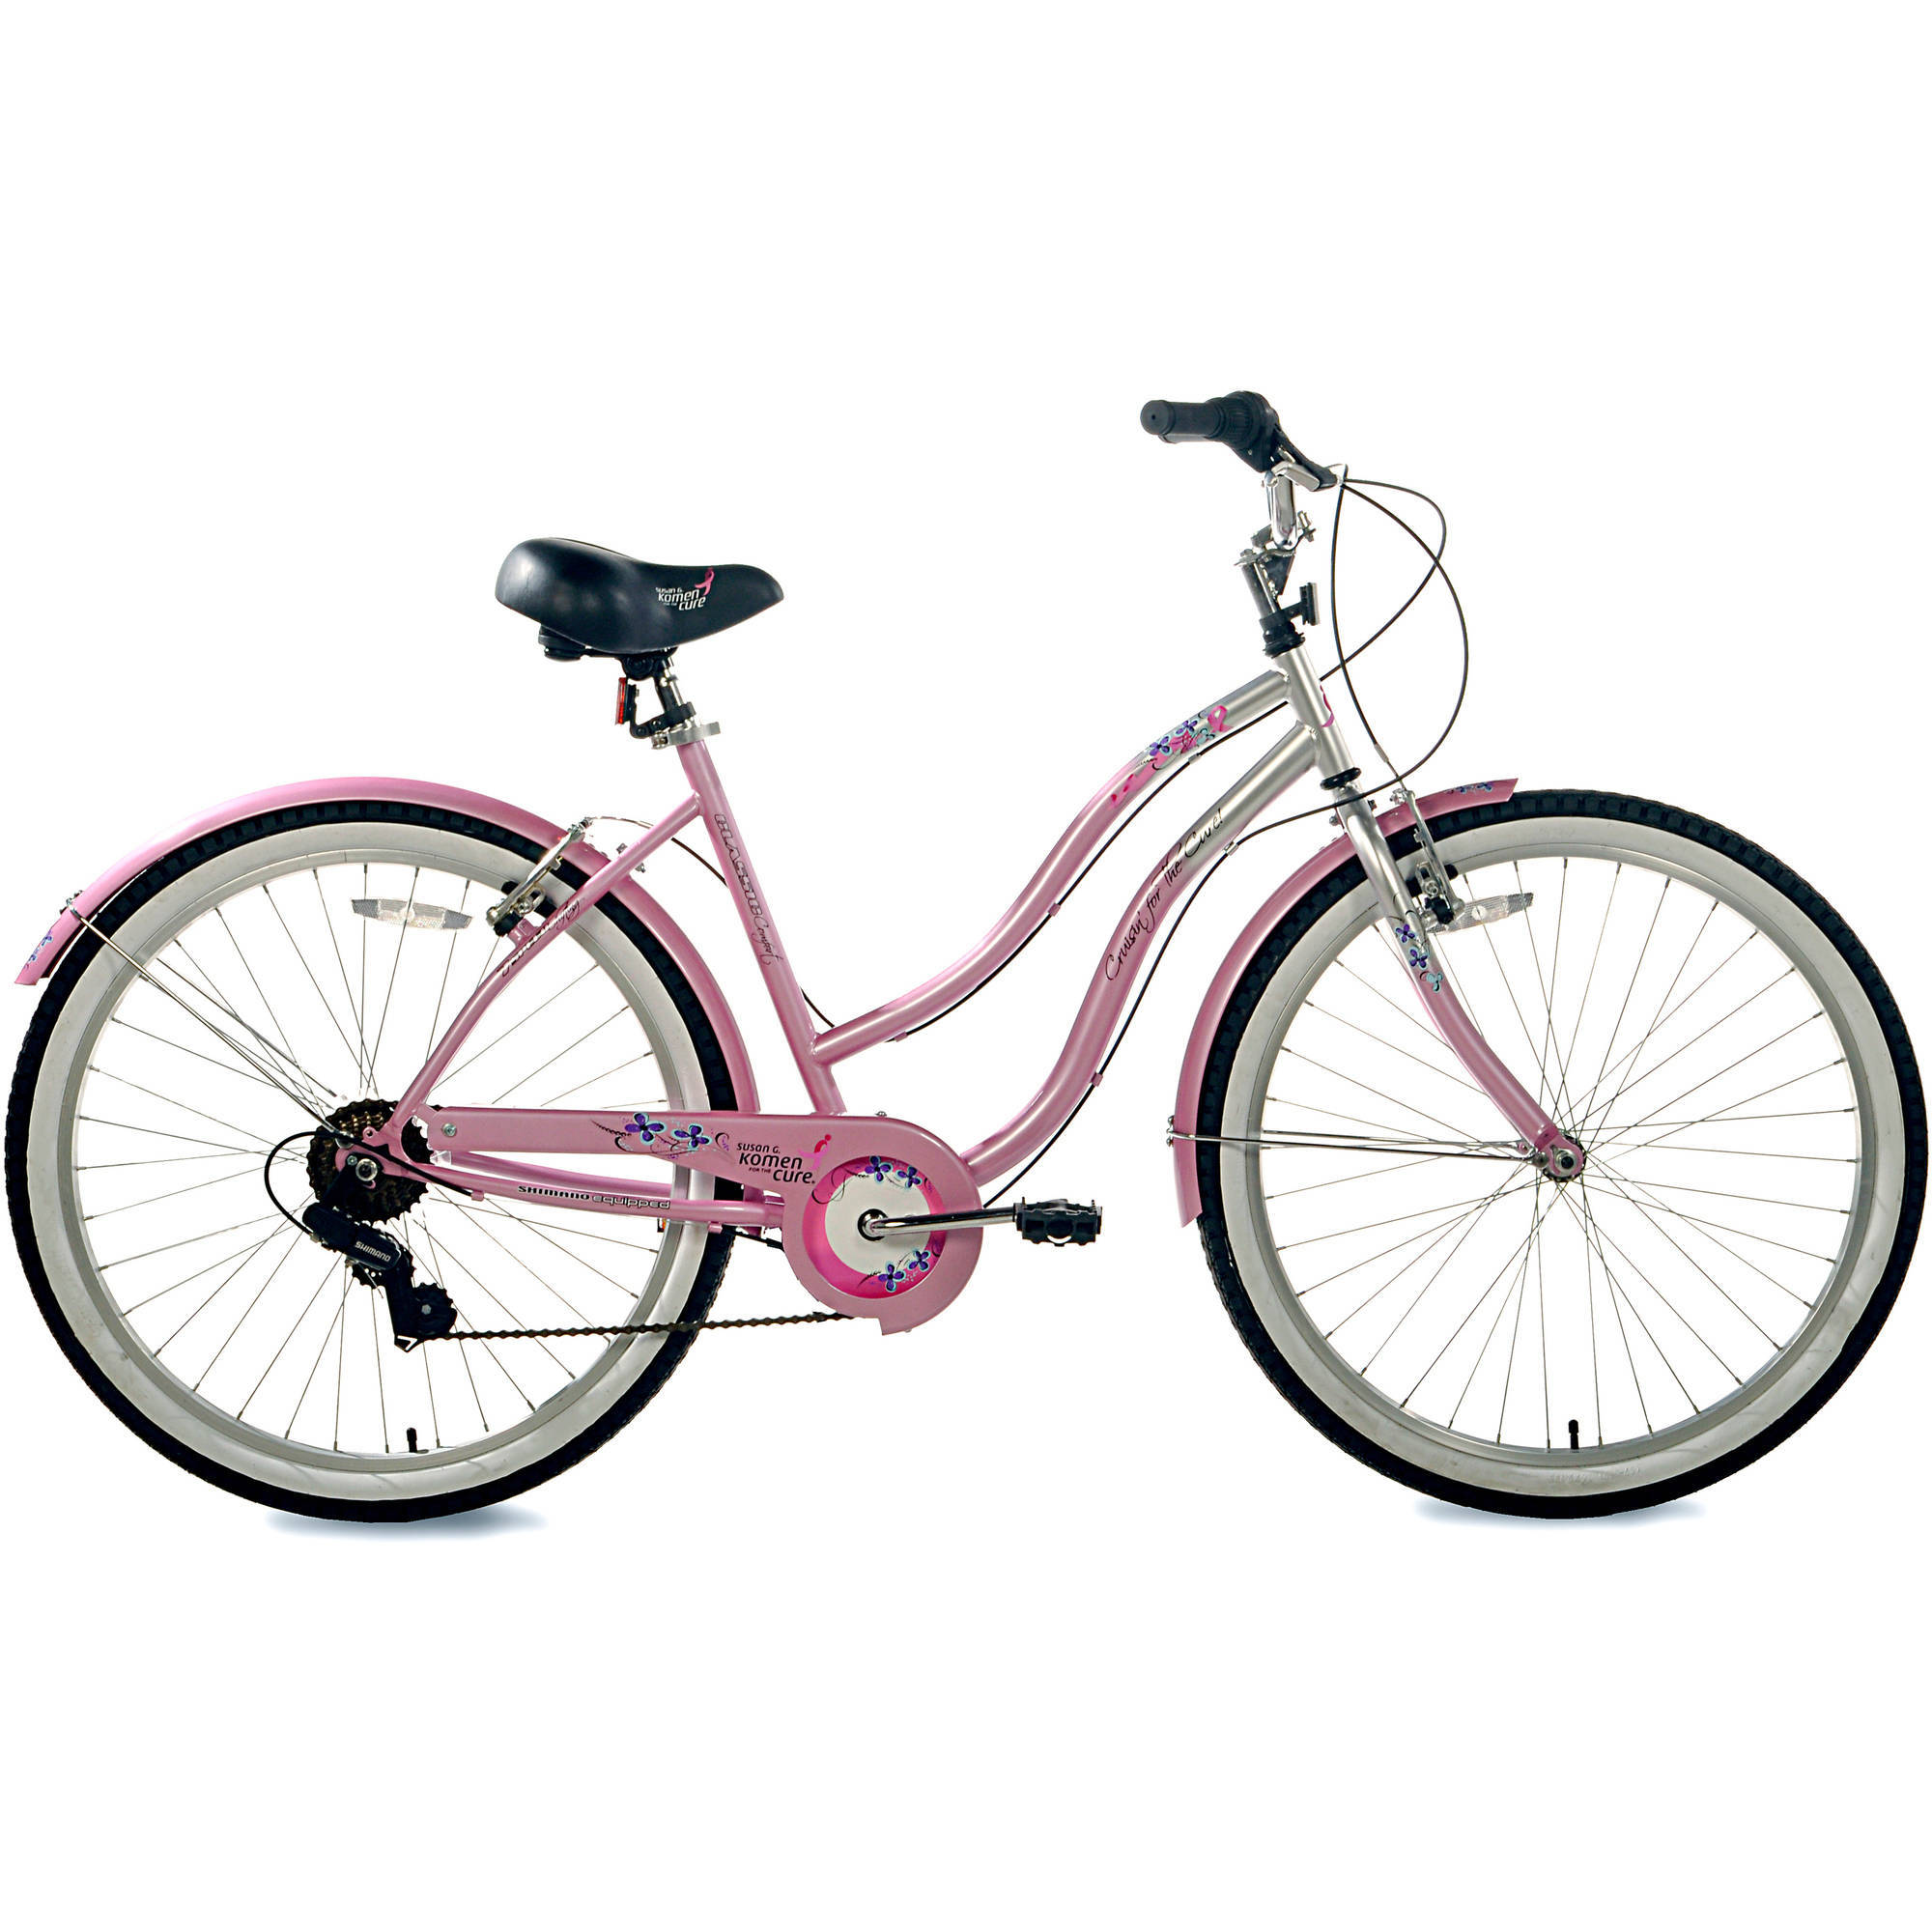 "26"" Susan G. Komen Multi-Speed Women's Cruiser Bike"